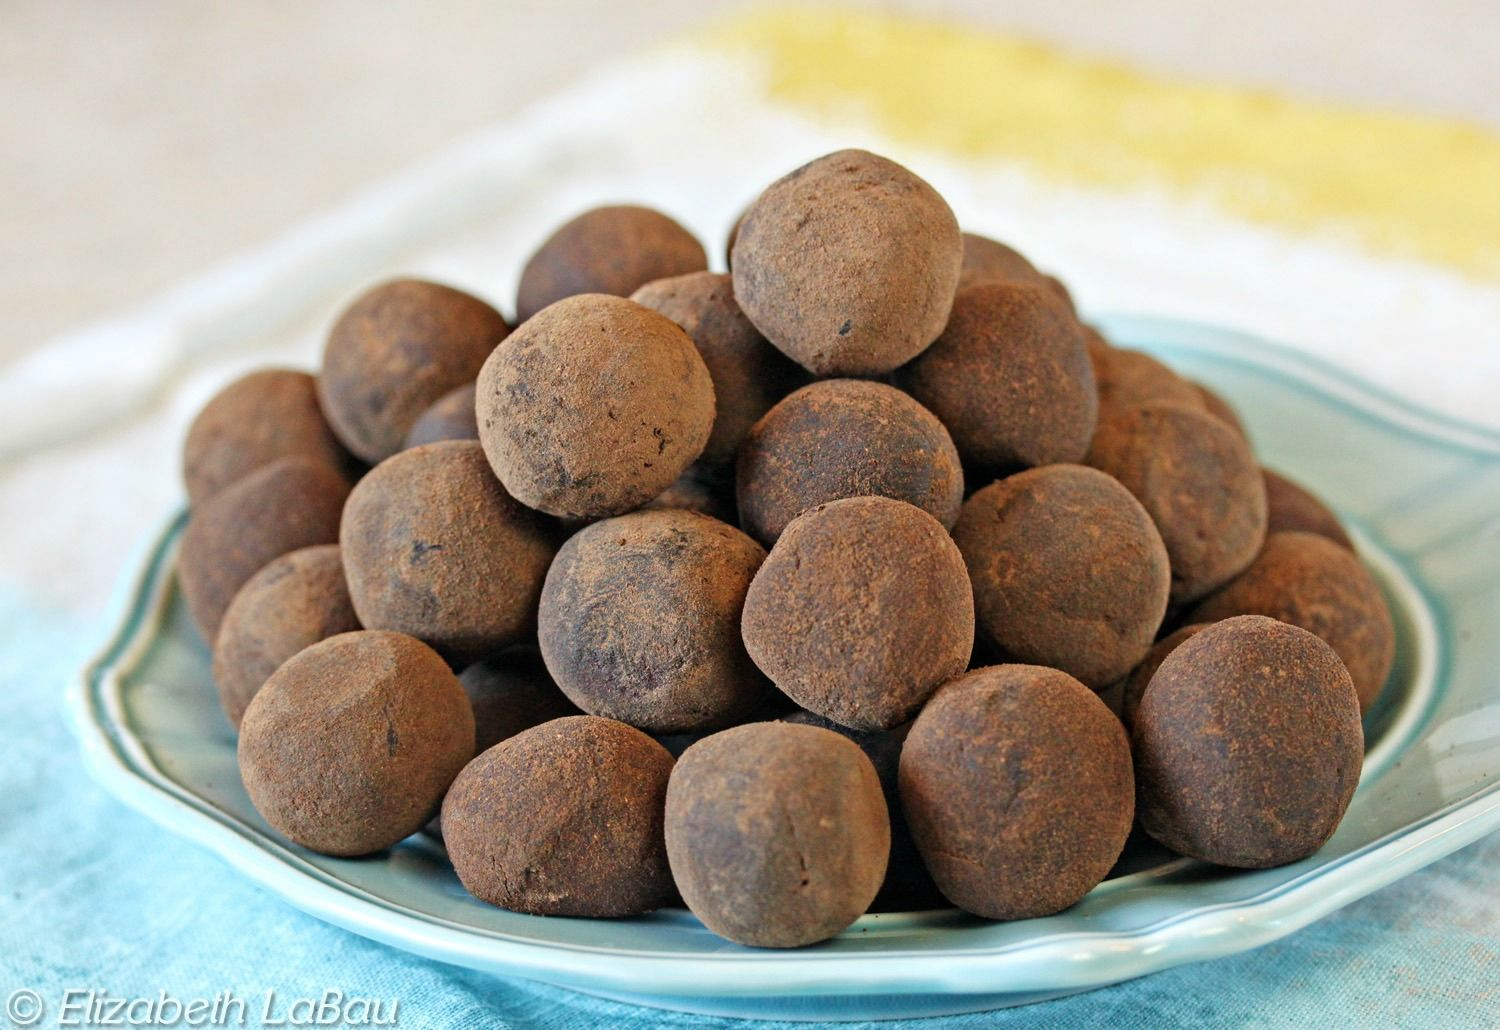 Quick And Easy Chocolate Cream Cheese Truffles Recipe Chocolate Cream Cheese Truffle Recipe Cream Cheese Desserts